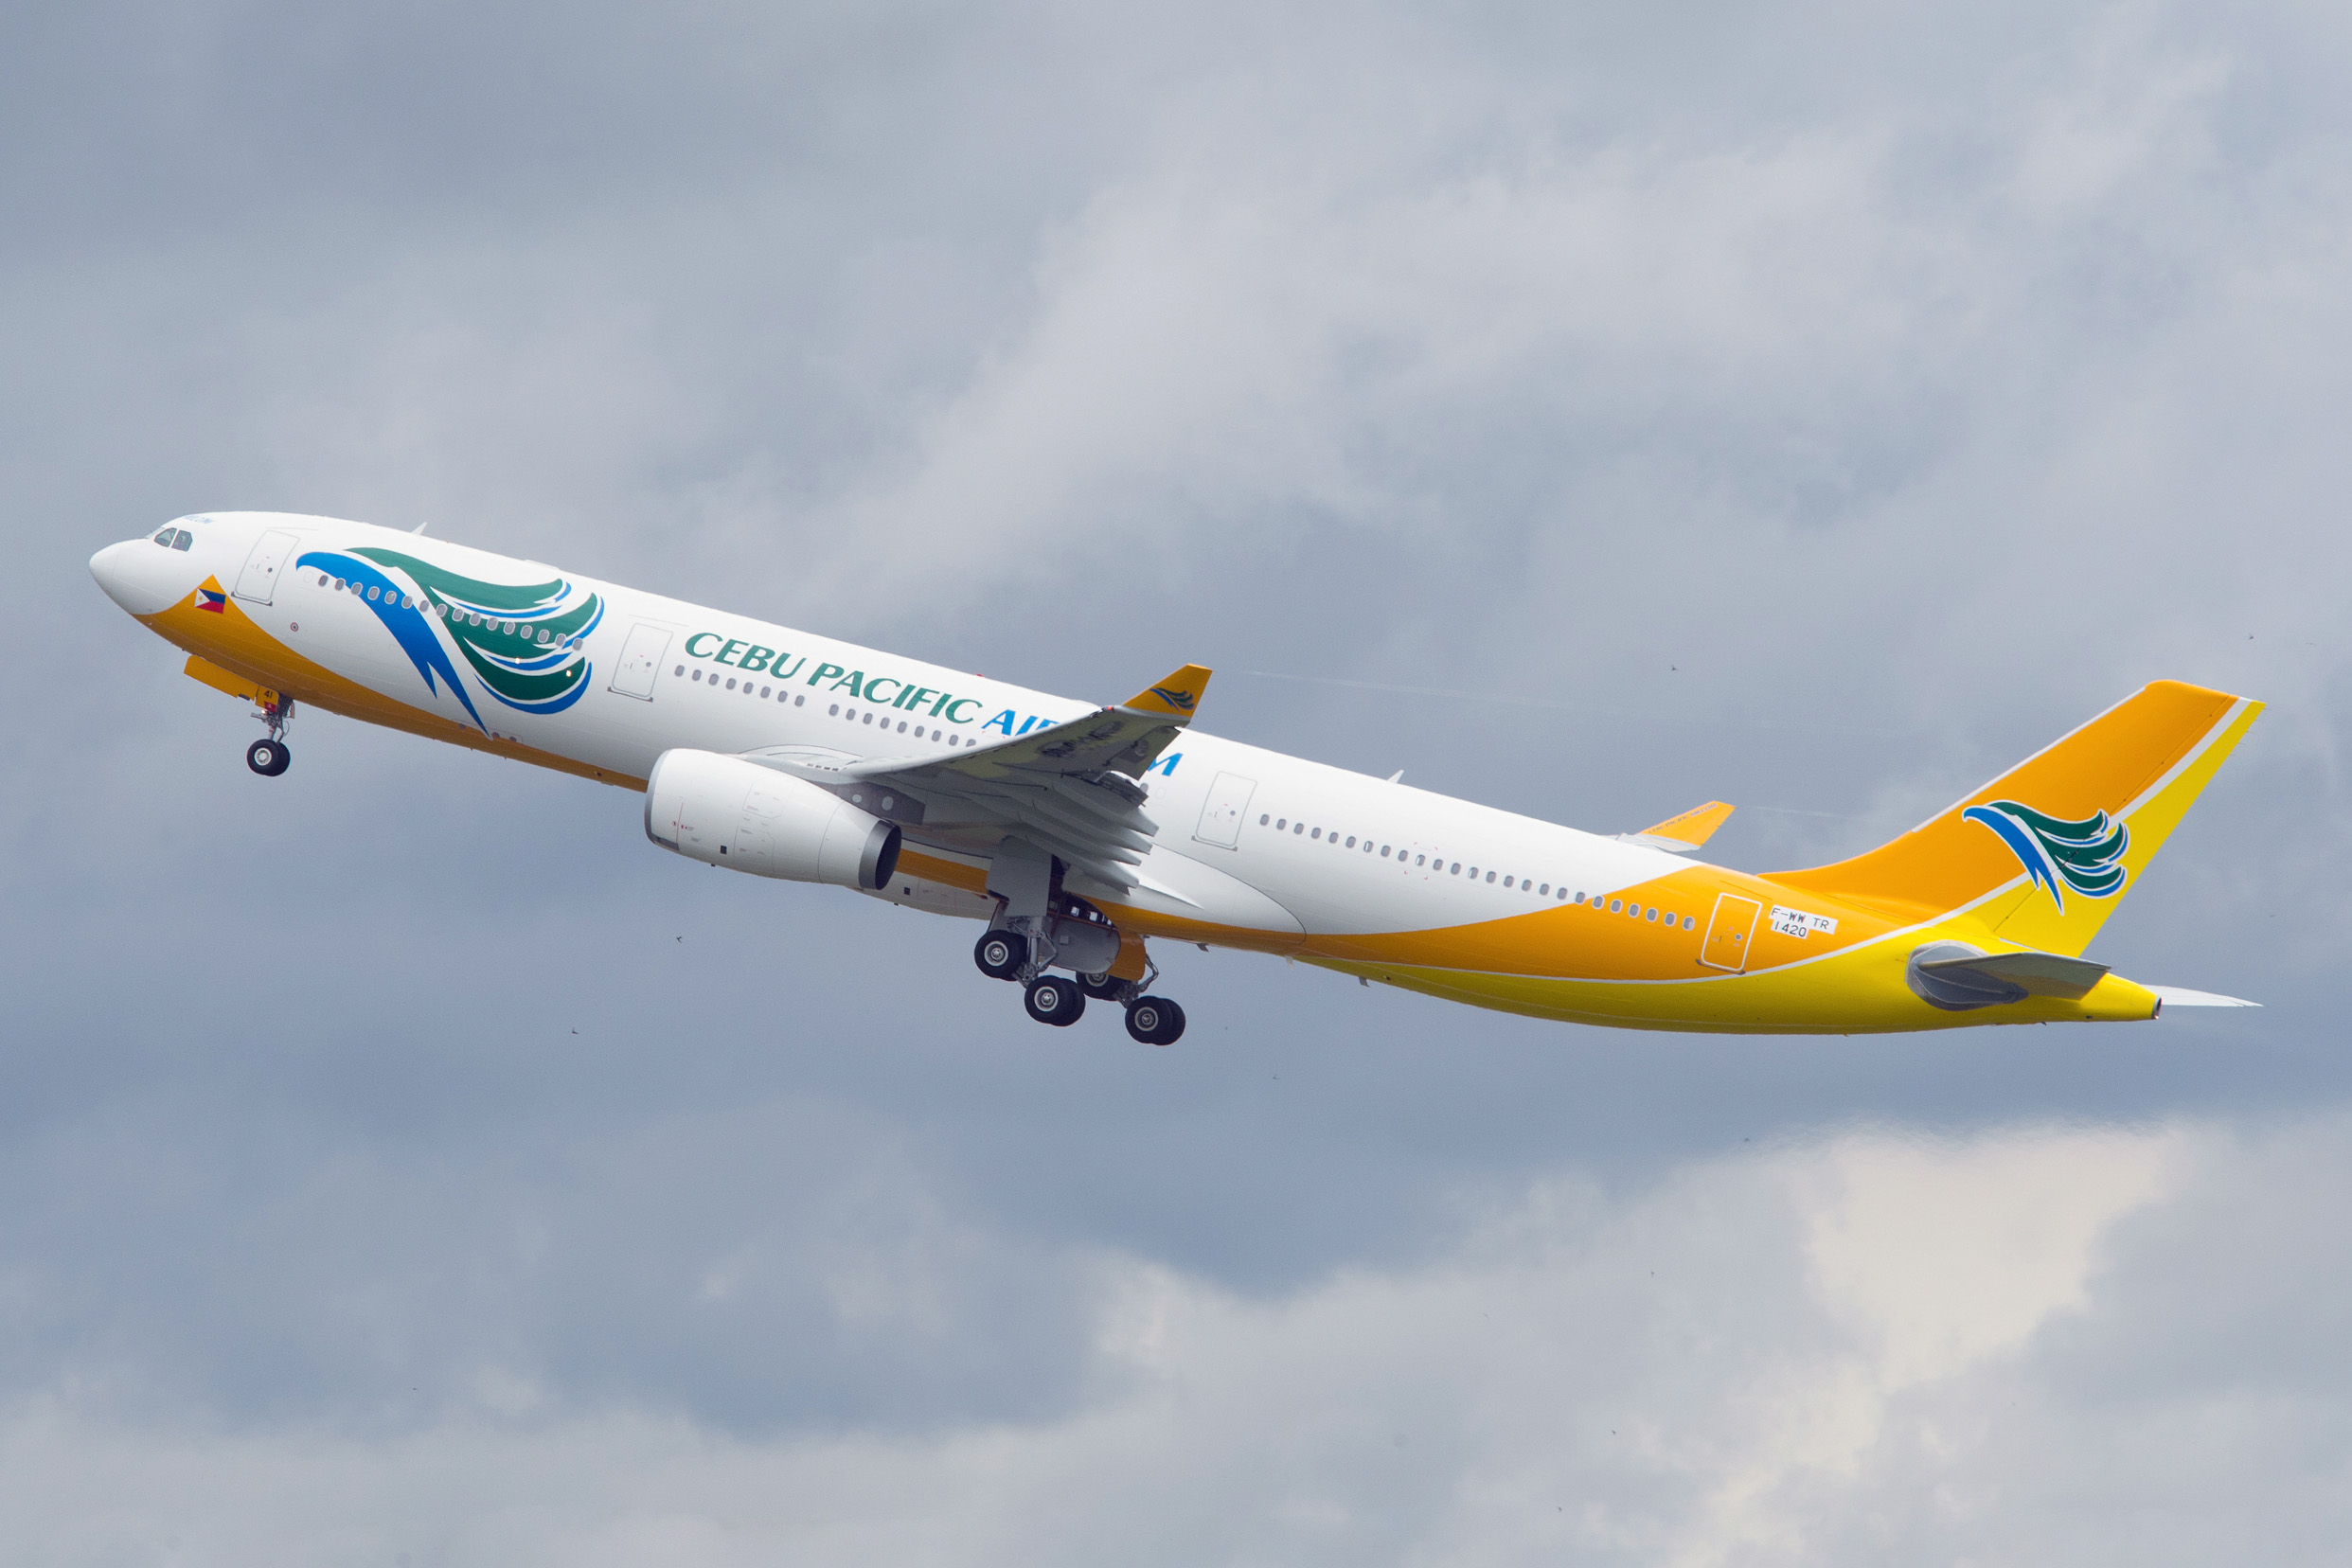 Авиакомпания Себу Пасифик Эйр (Cebu Pacific Air). Официальный сайт.